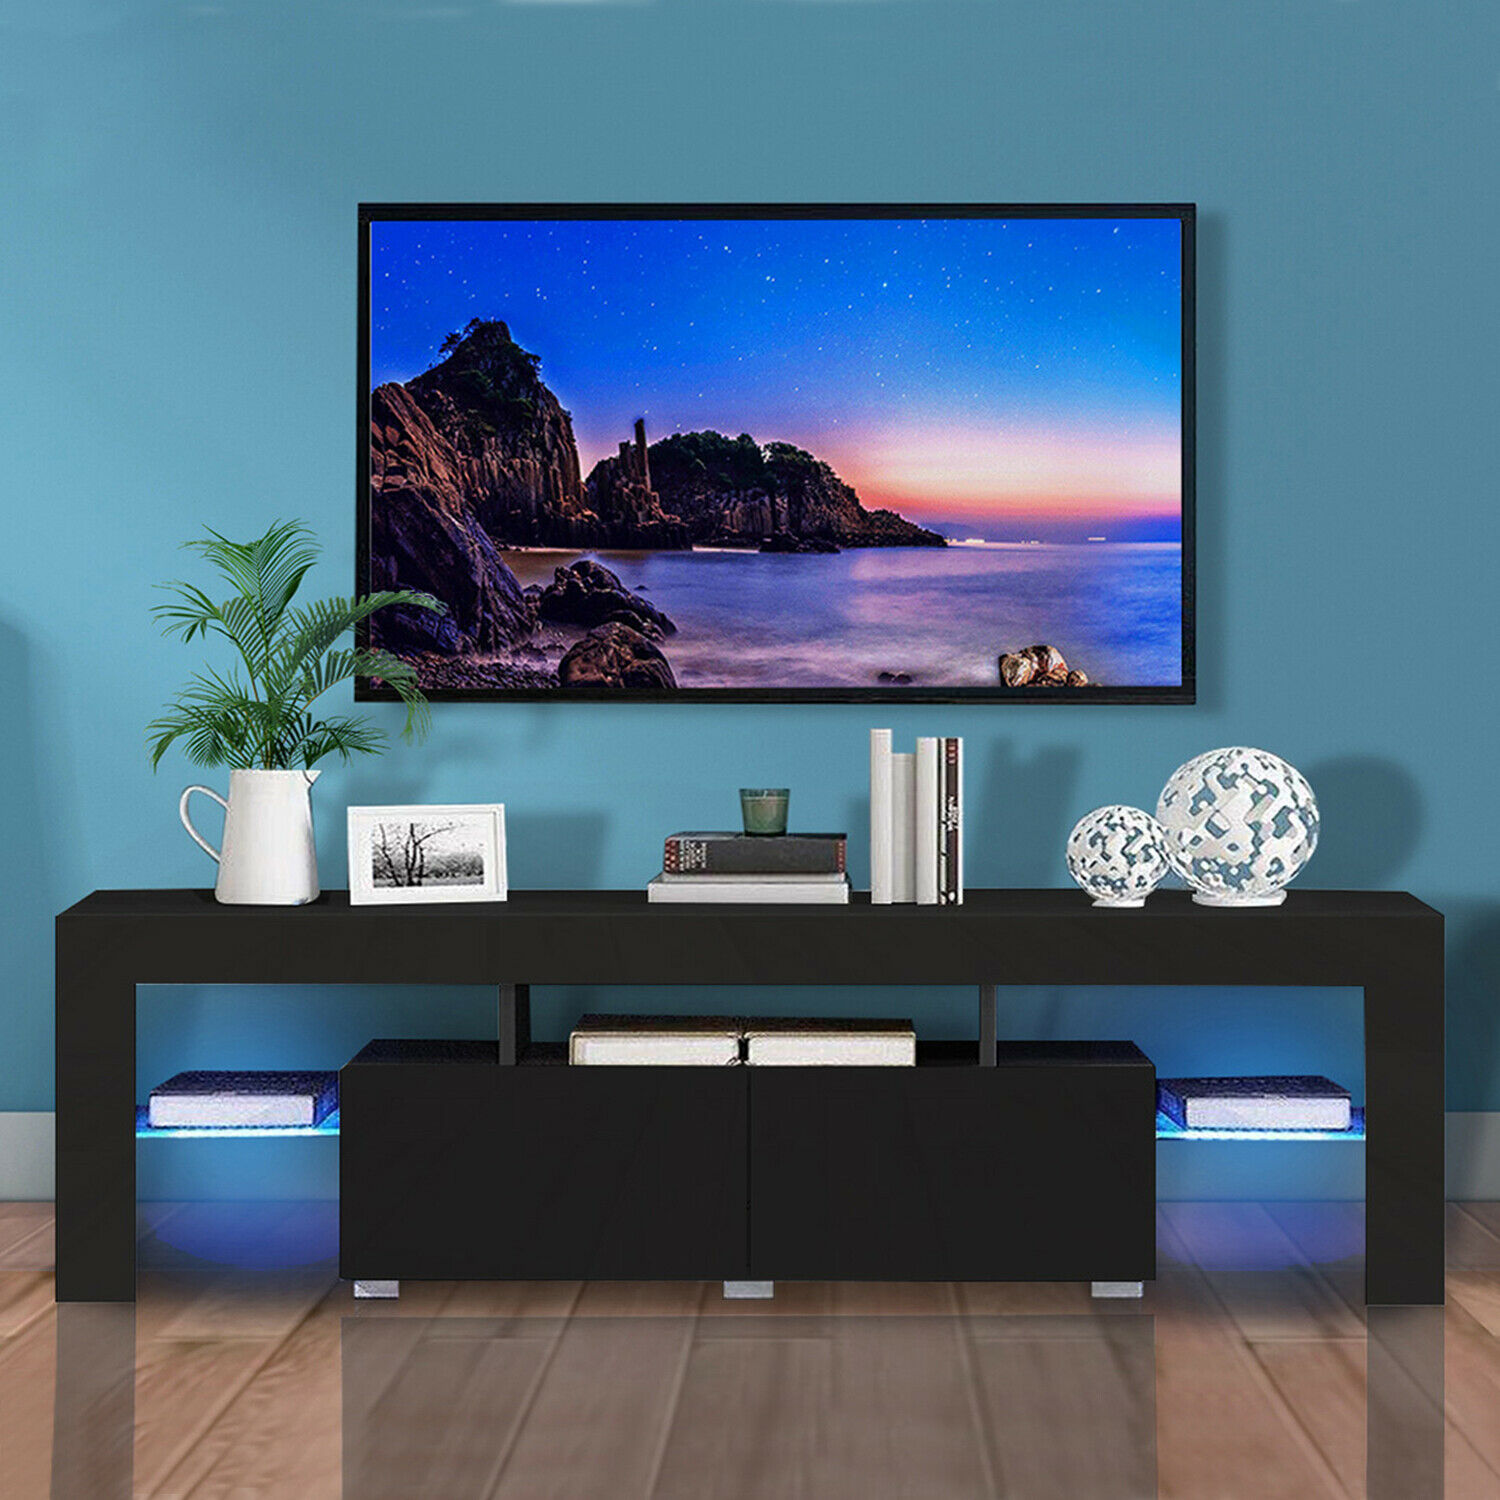 thumbnail 15 - Modern TV Stand Cabinet w/ LED Light for 65 Inch TV Media Storage Console Table